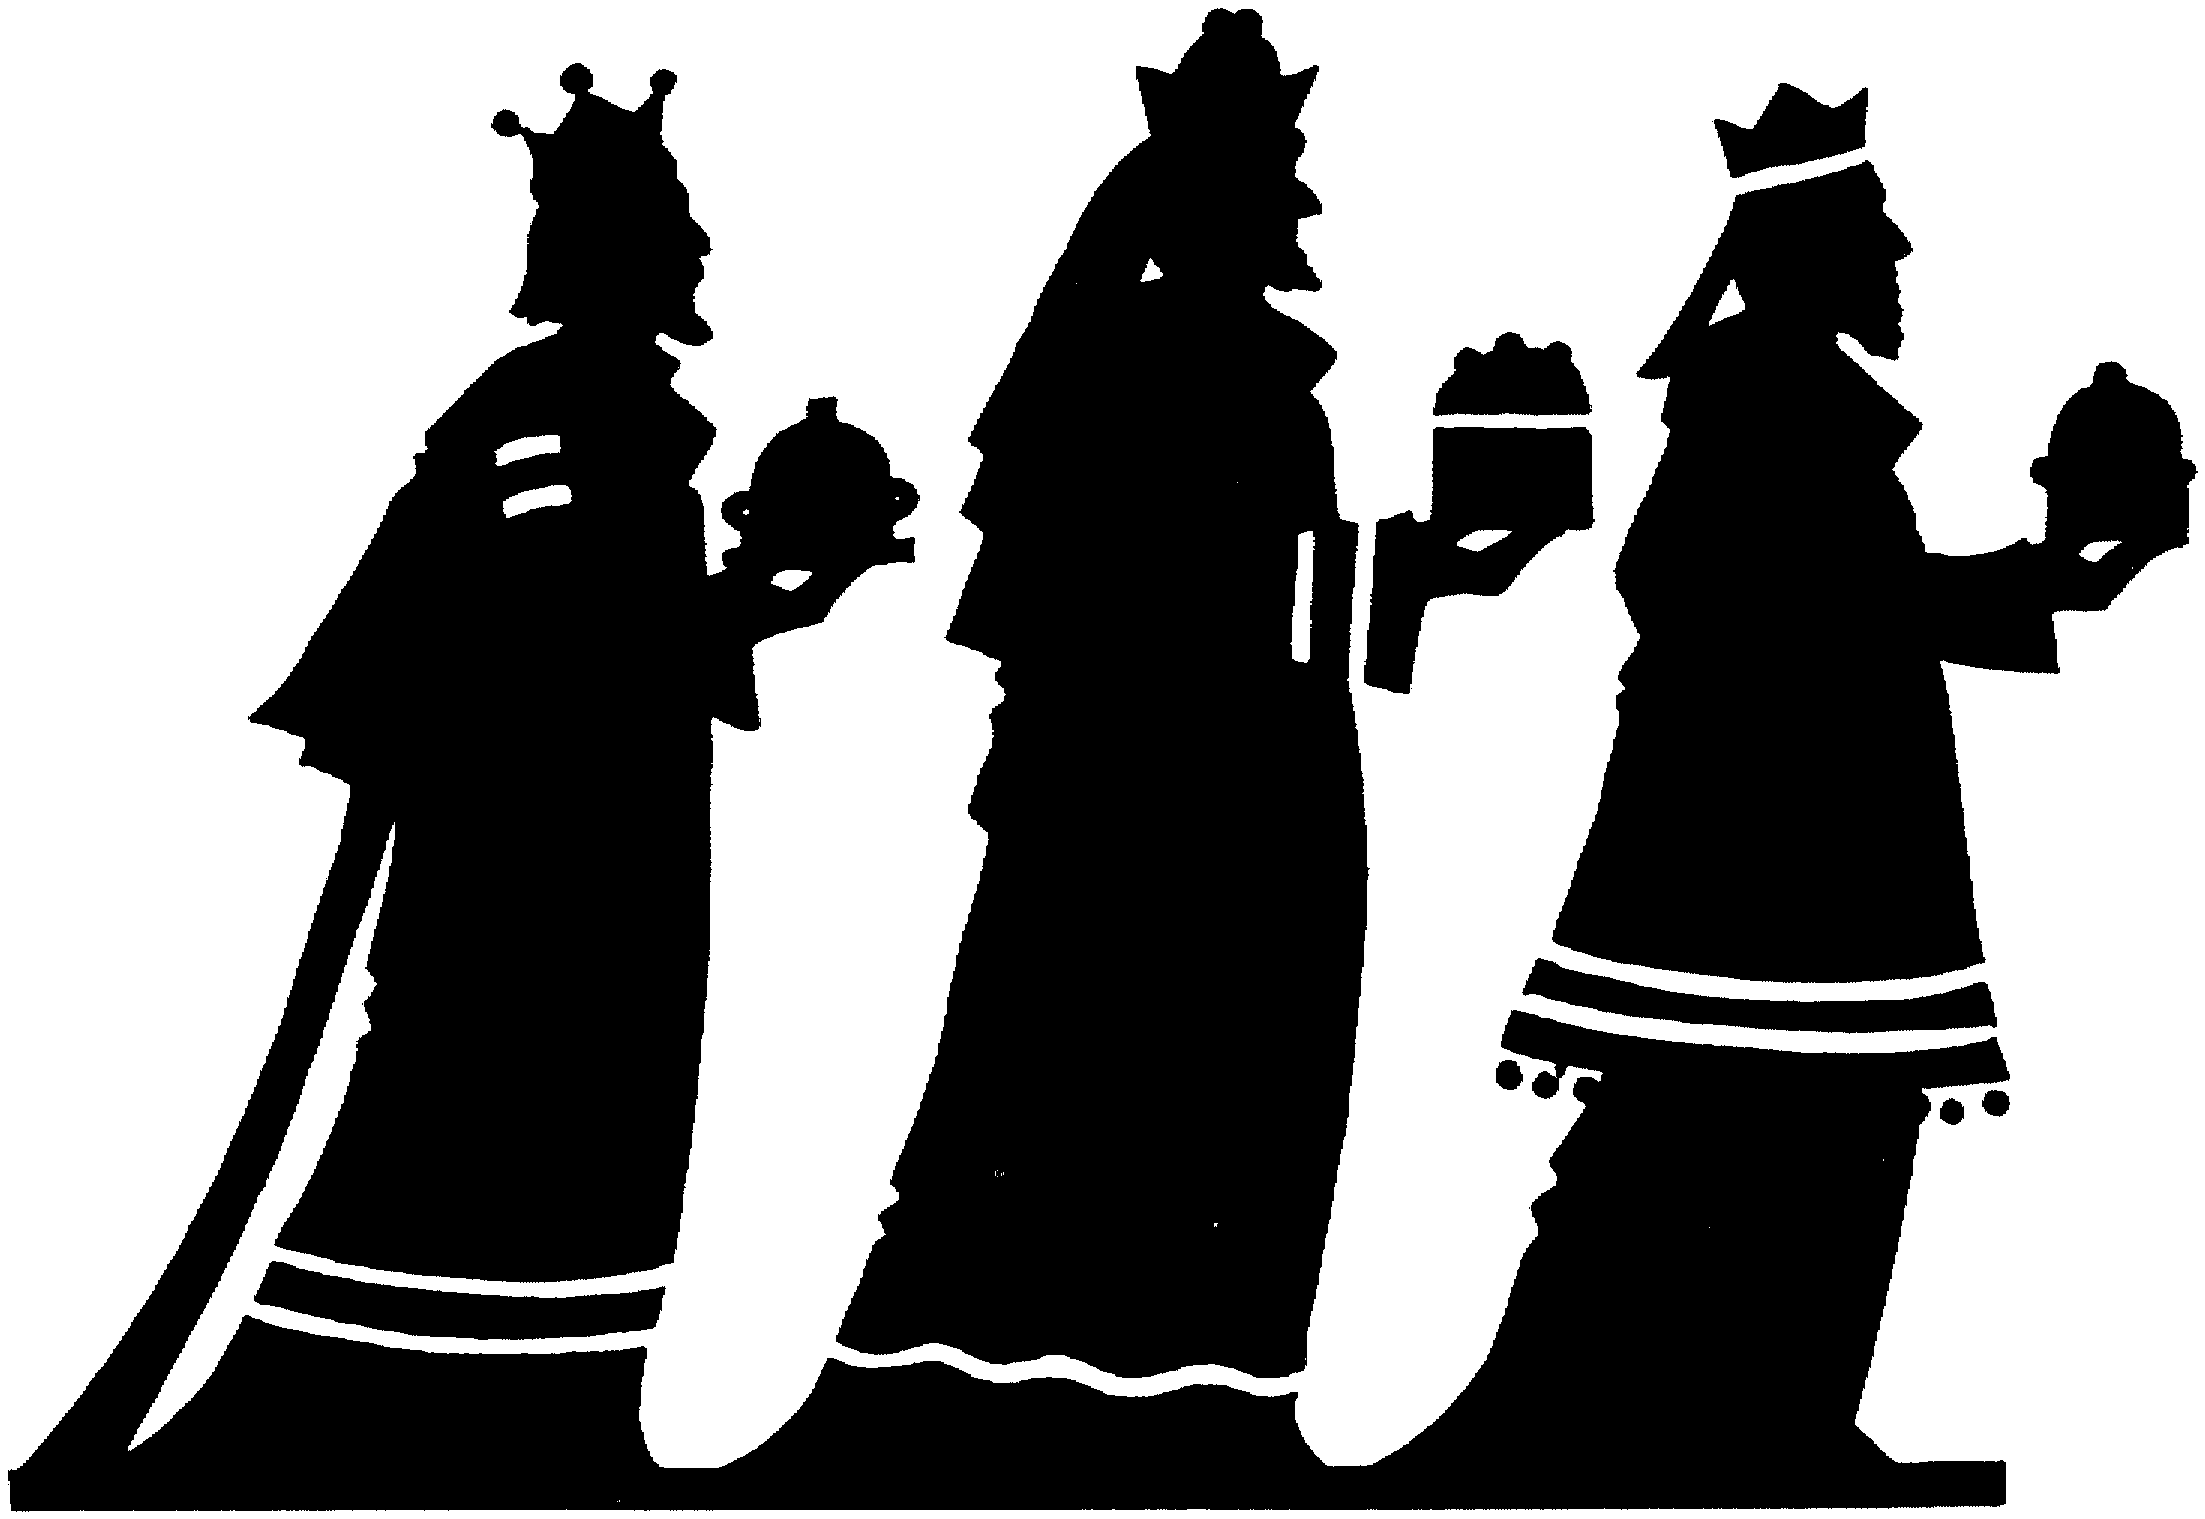 3 Kings silhouette.